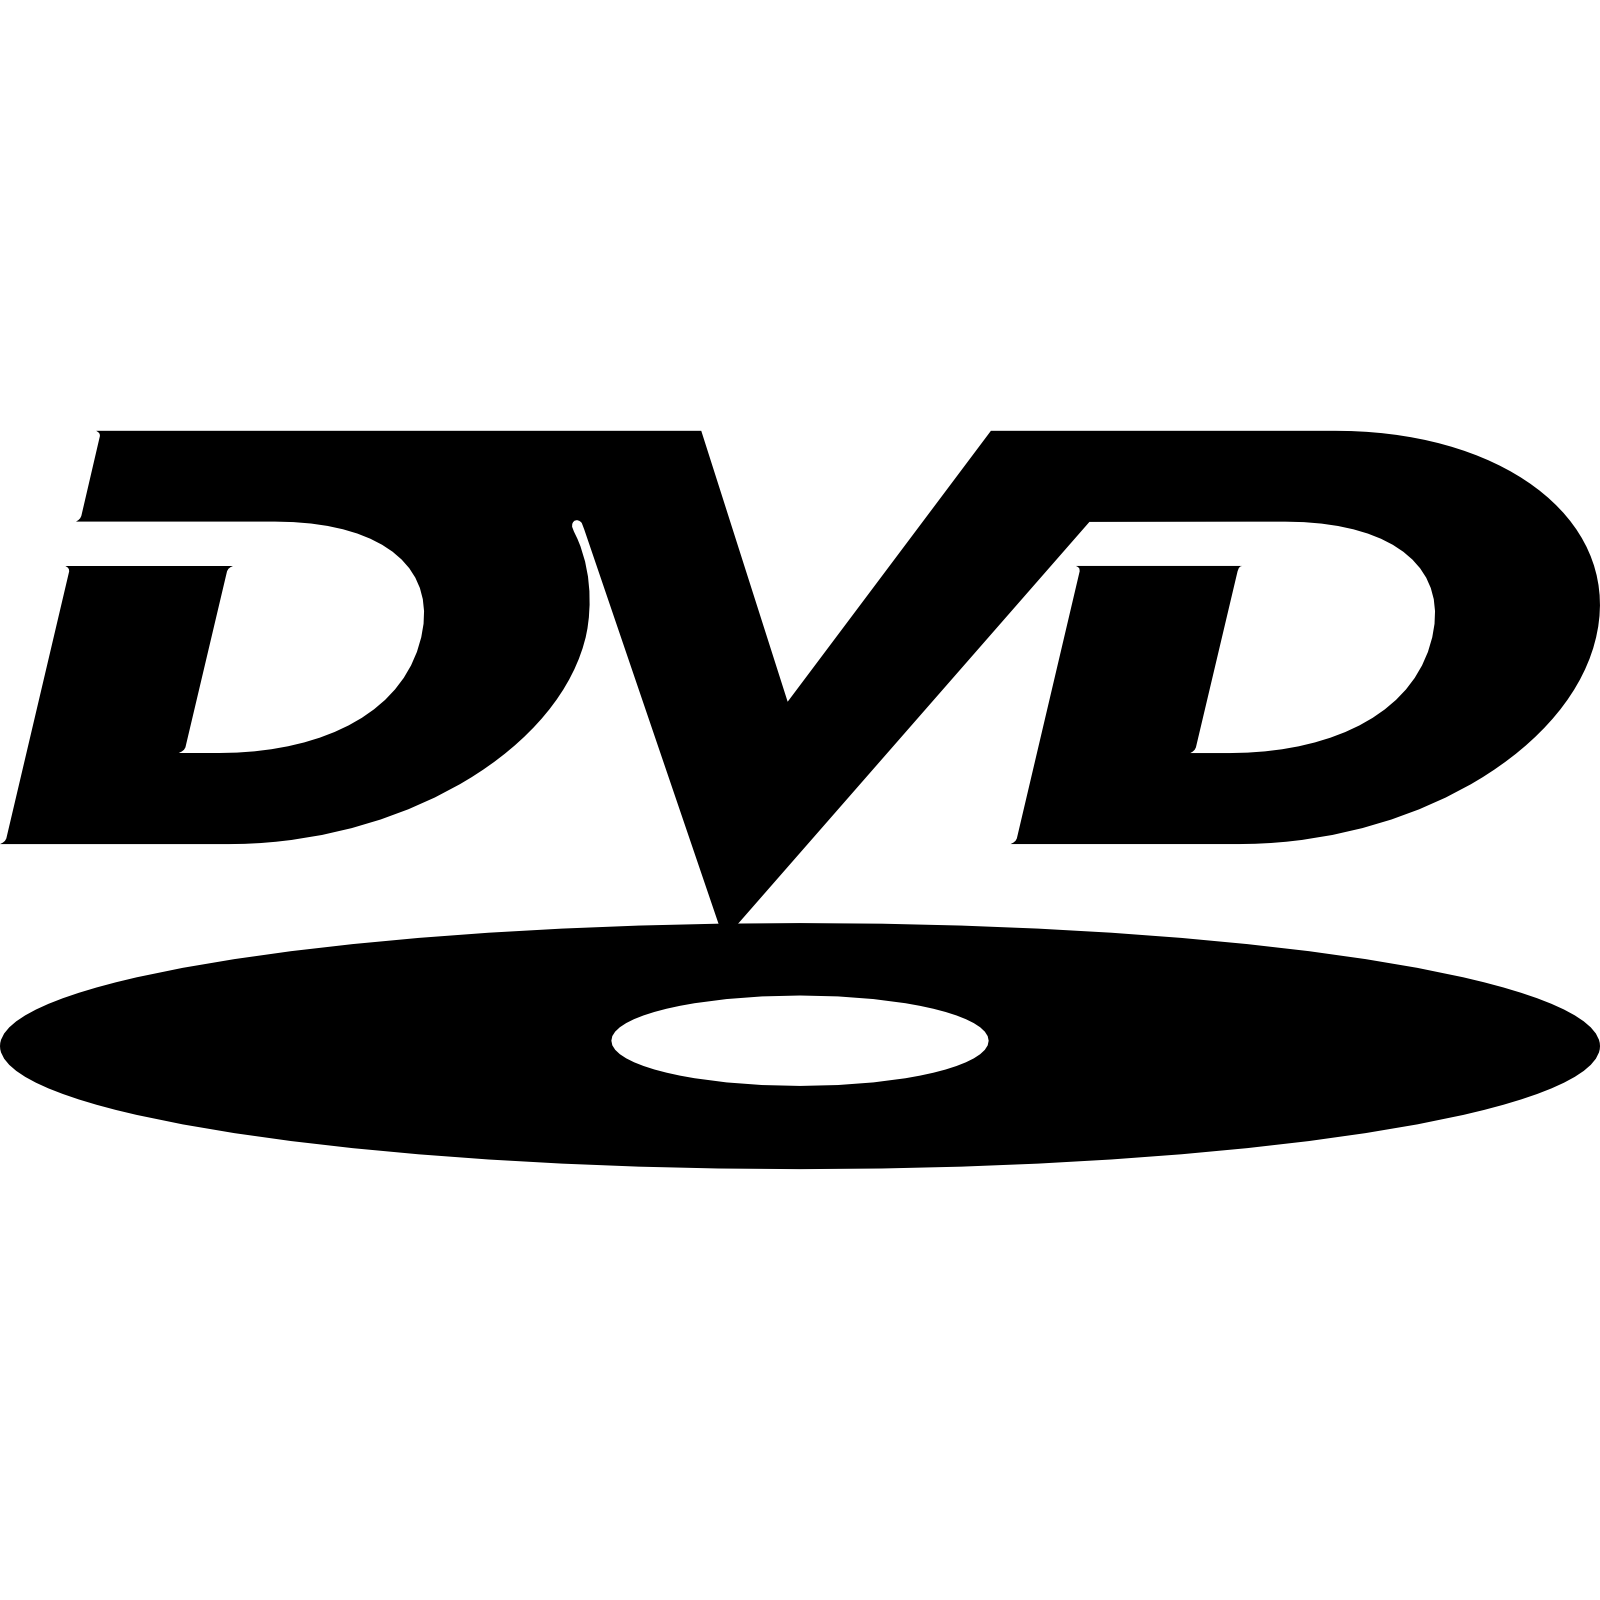 Dvd logo png. Image logopedia fandom powered